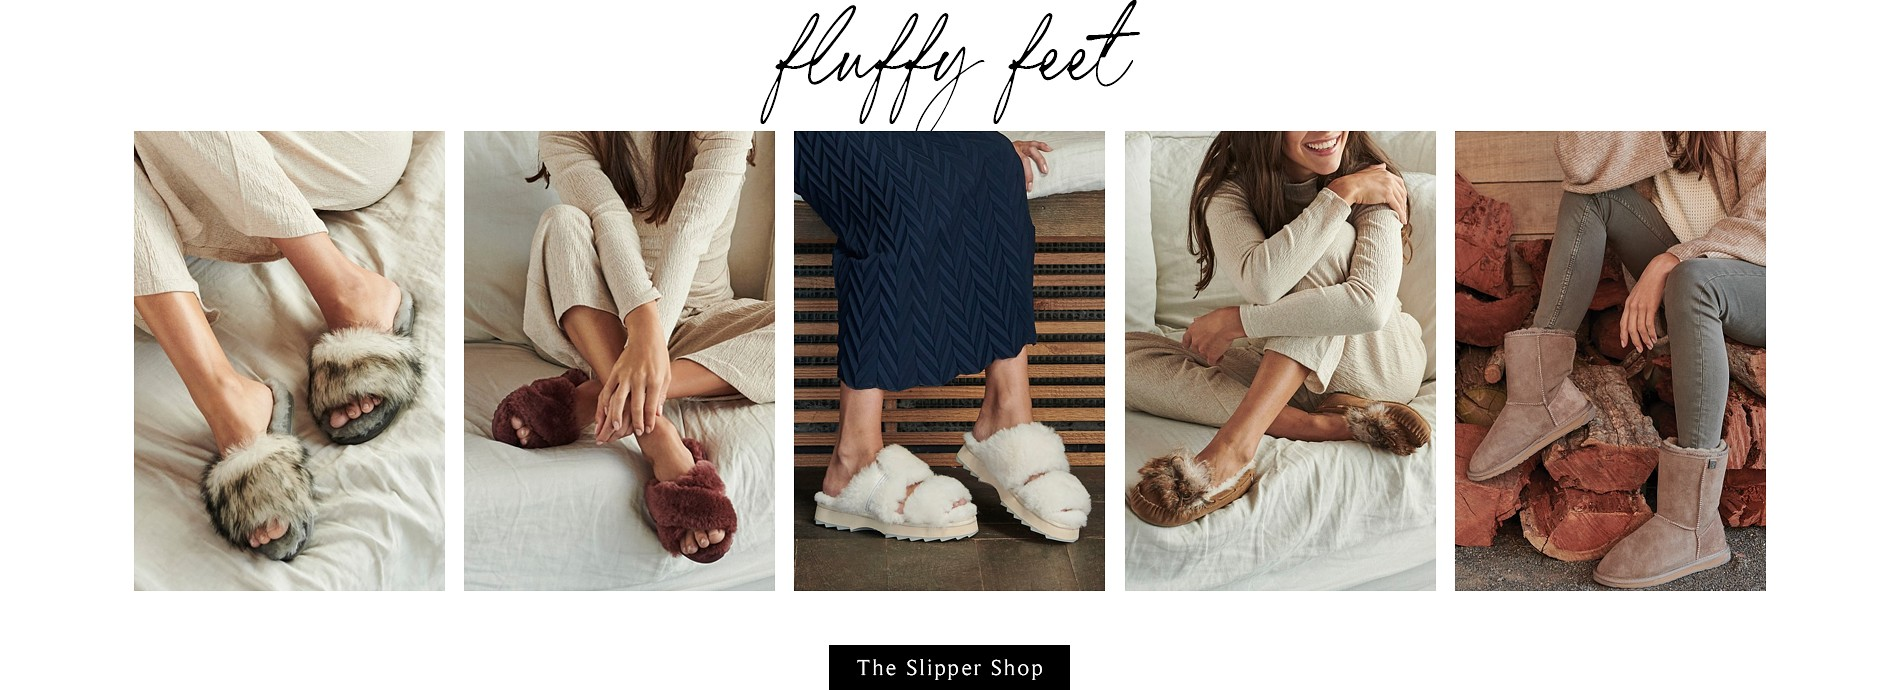 Fluffy slippers in neutral colors